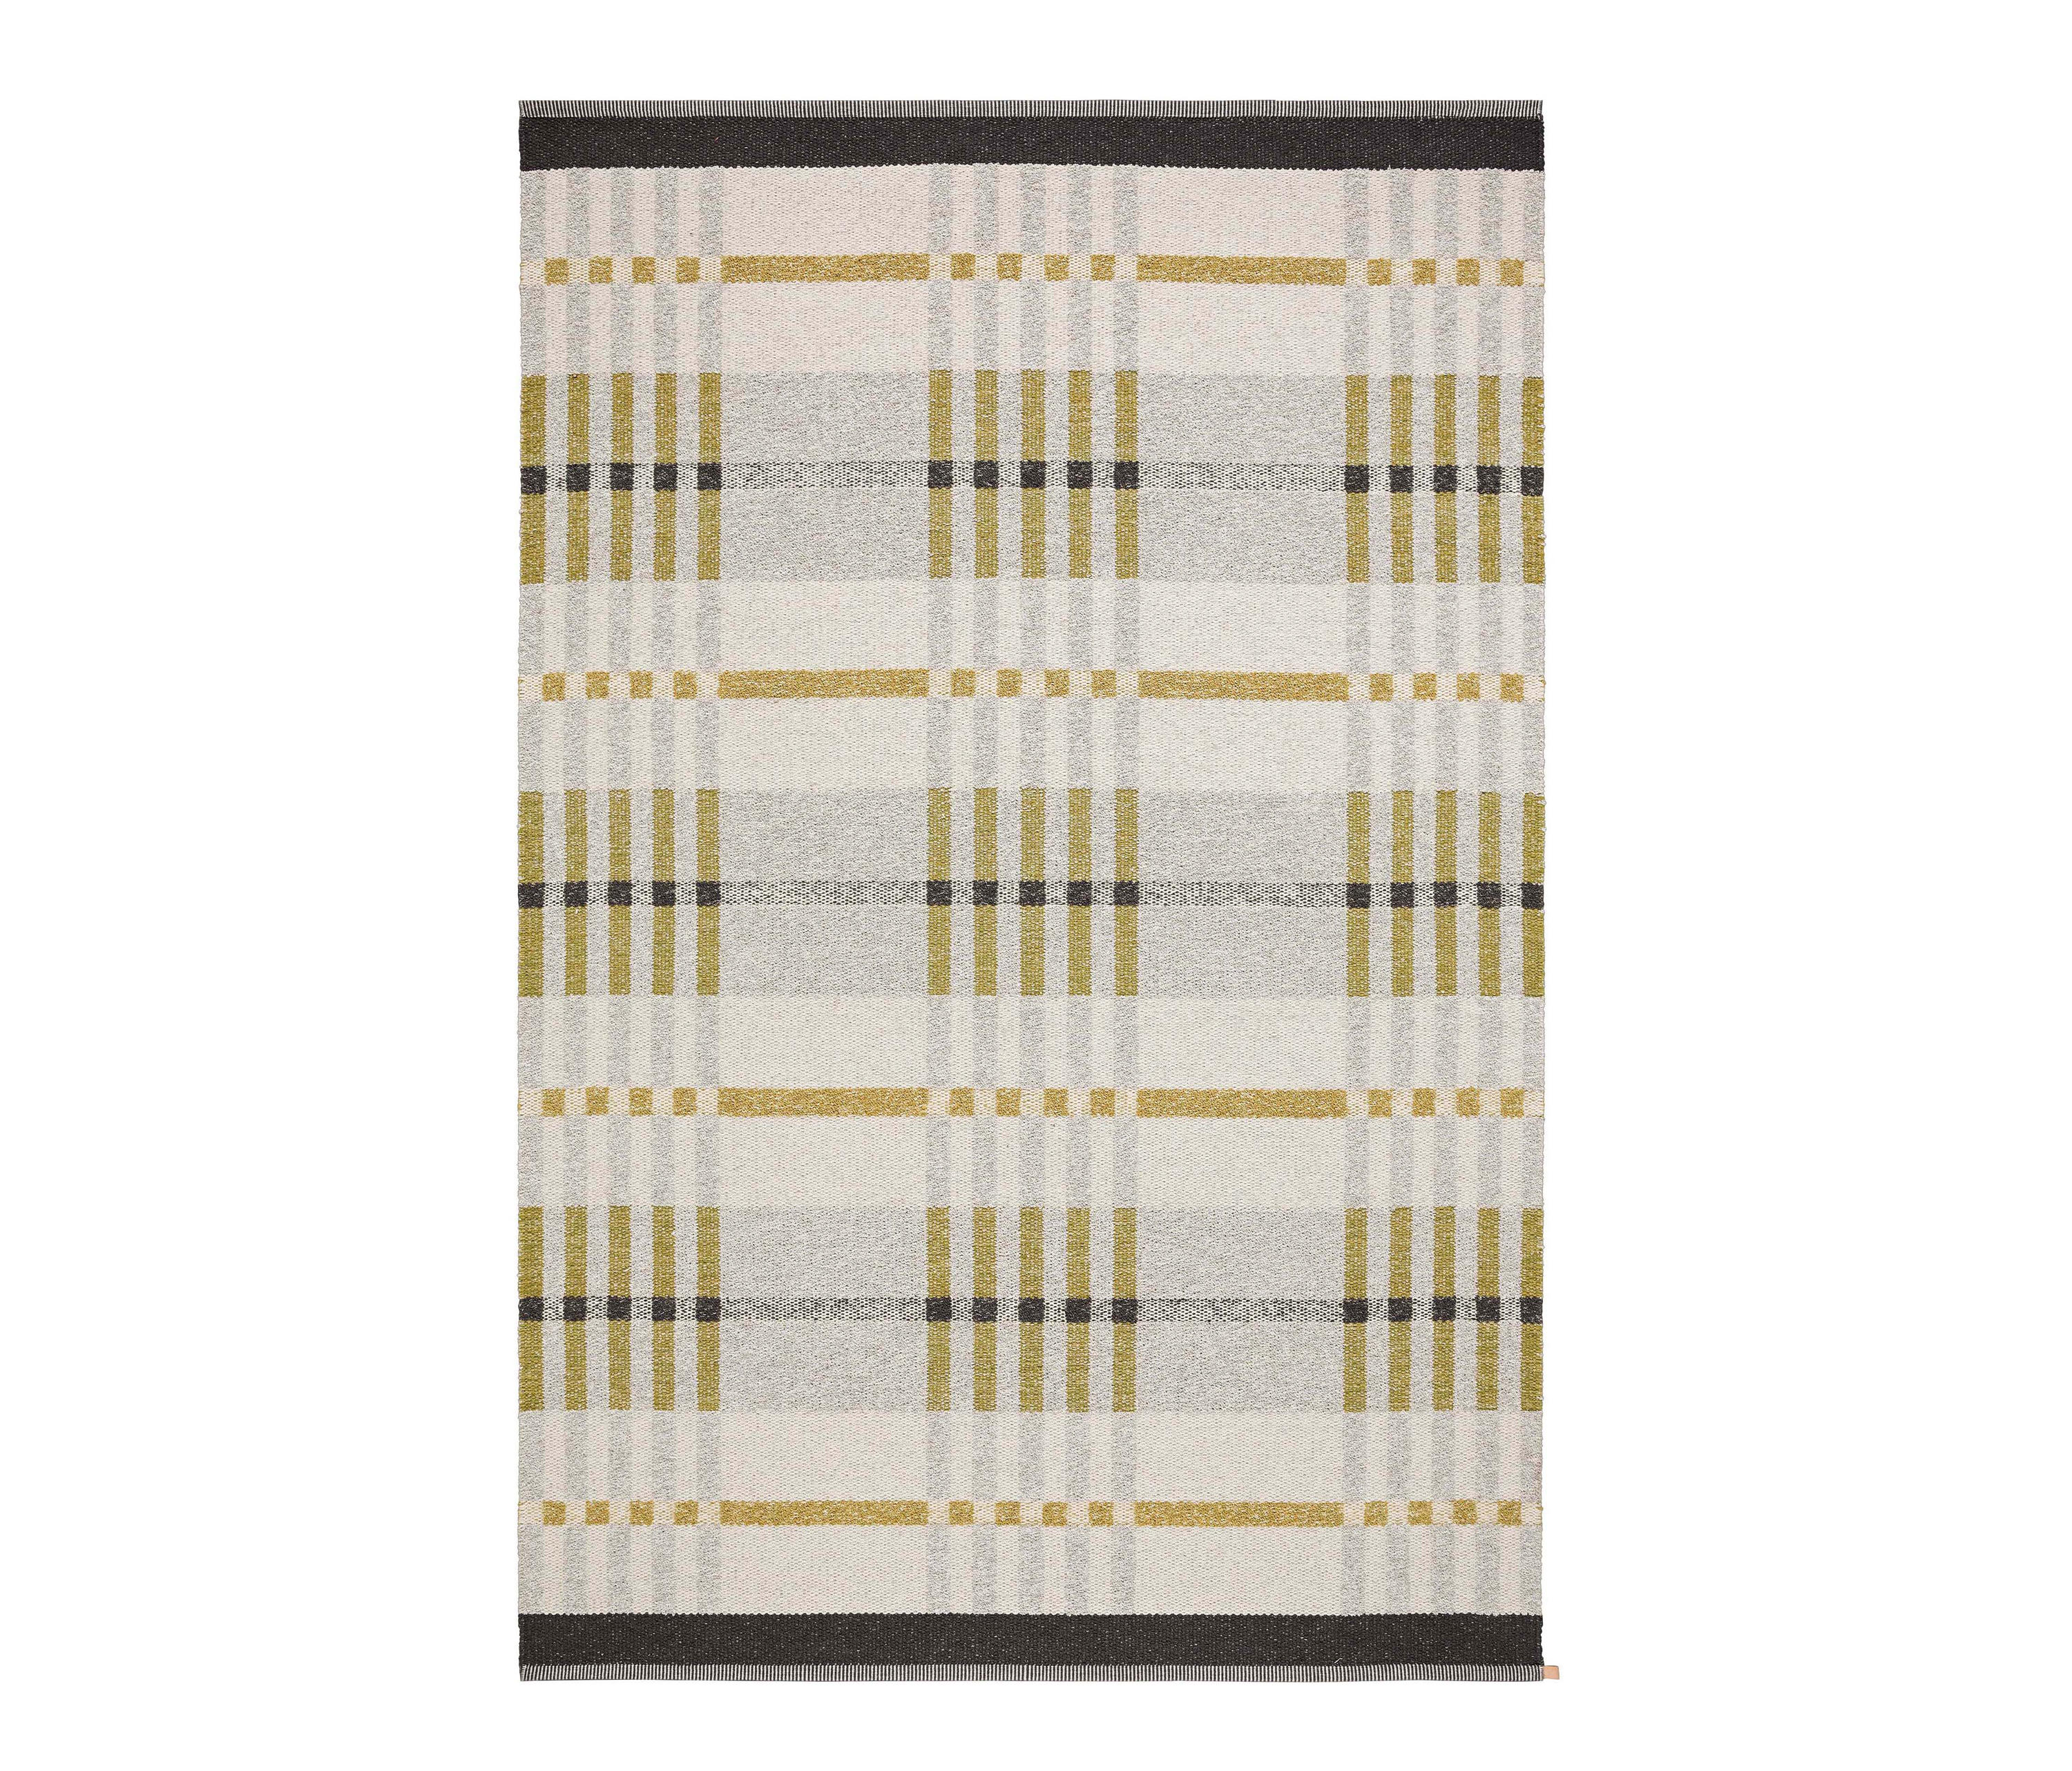 TWEED FROSTY PLAINS 540 Rugs Designer Rugs From